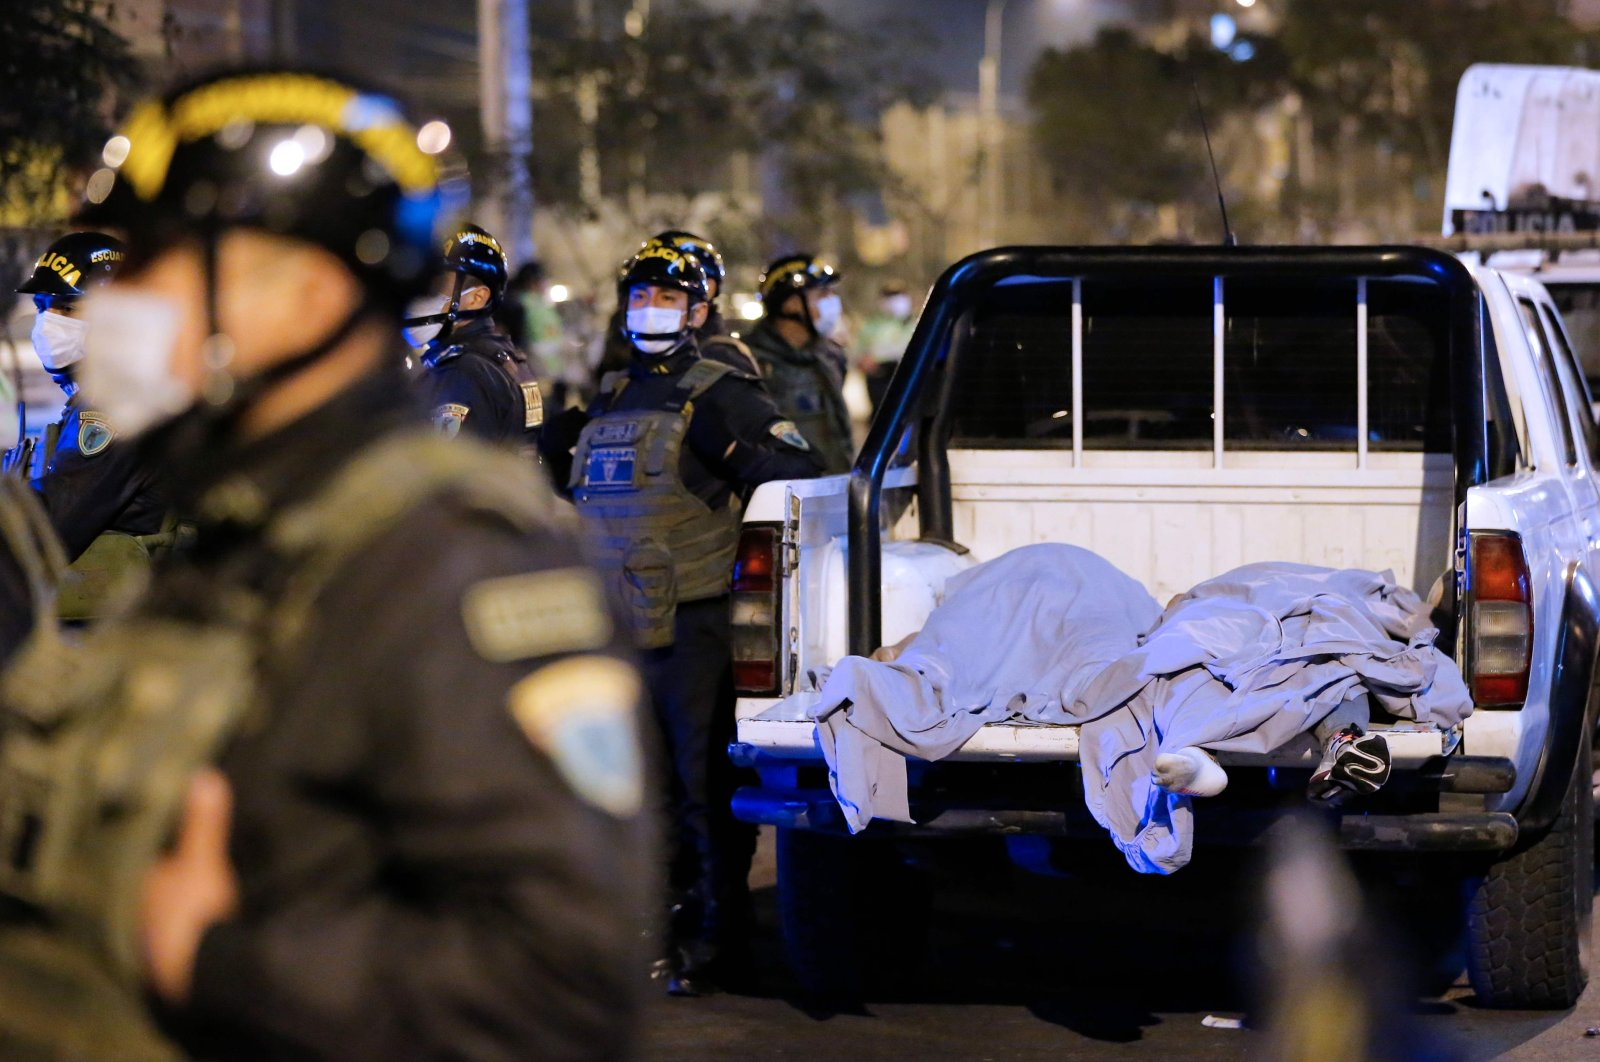 The bodies of some of the victims that suffocated in a crush during a raid on a nightclub in Lima, Peru, are seen on the back of a pickup truck outside the place where a party was being held despite a ban on such gatherings imposed to fight the coronavirus pandemic, Aug. 23, 2020. (AFP Photo)